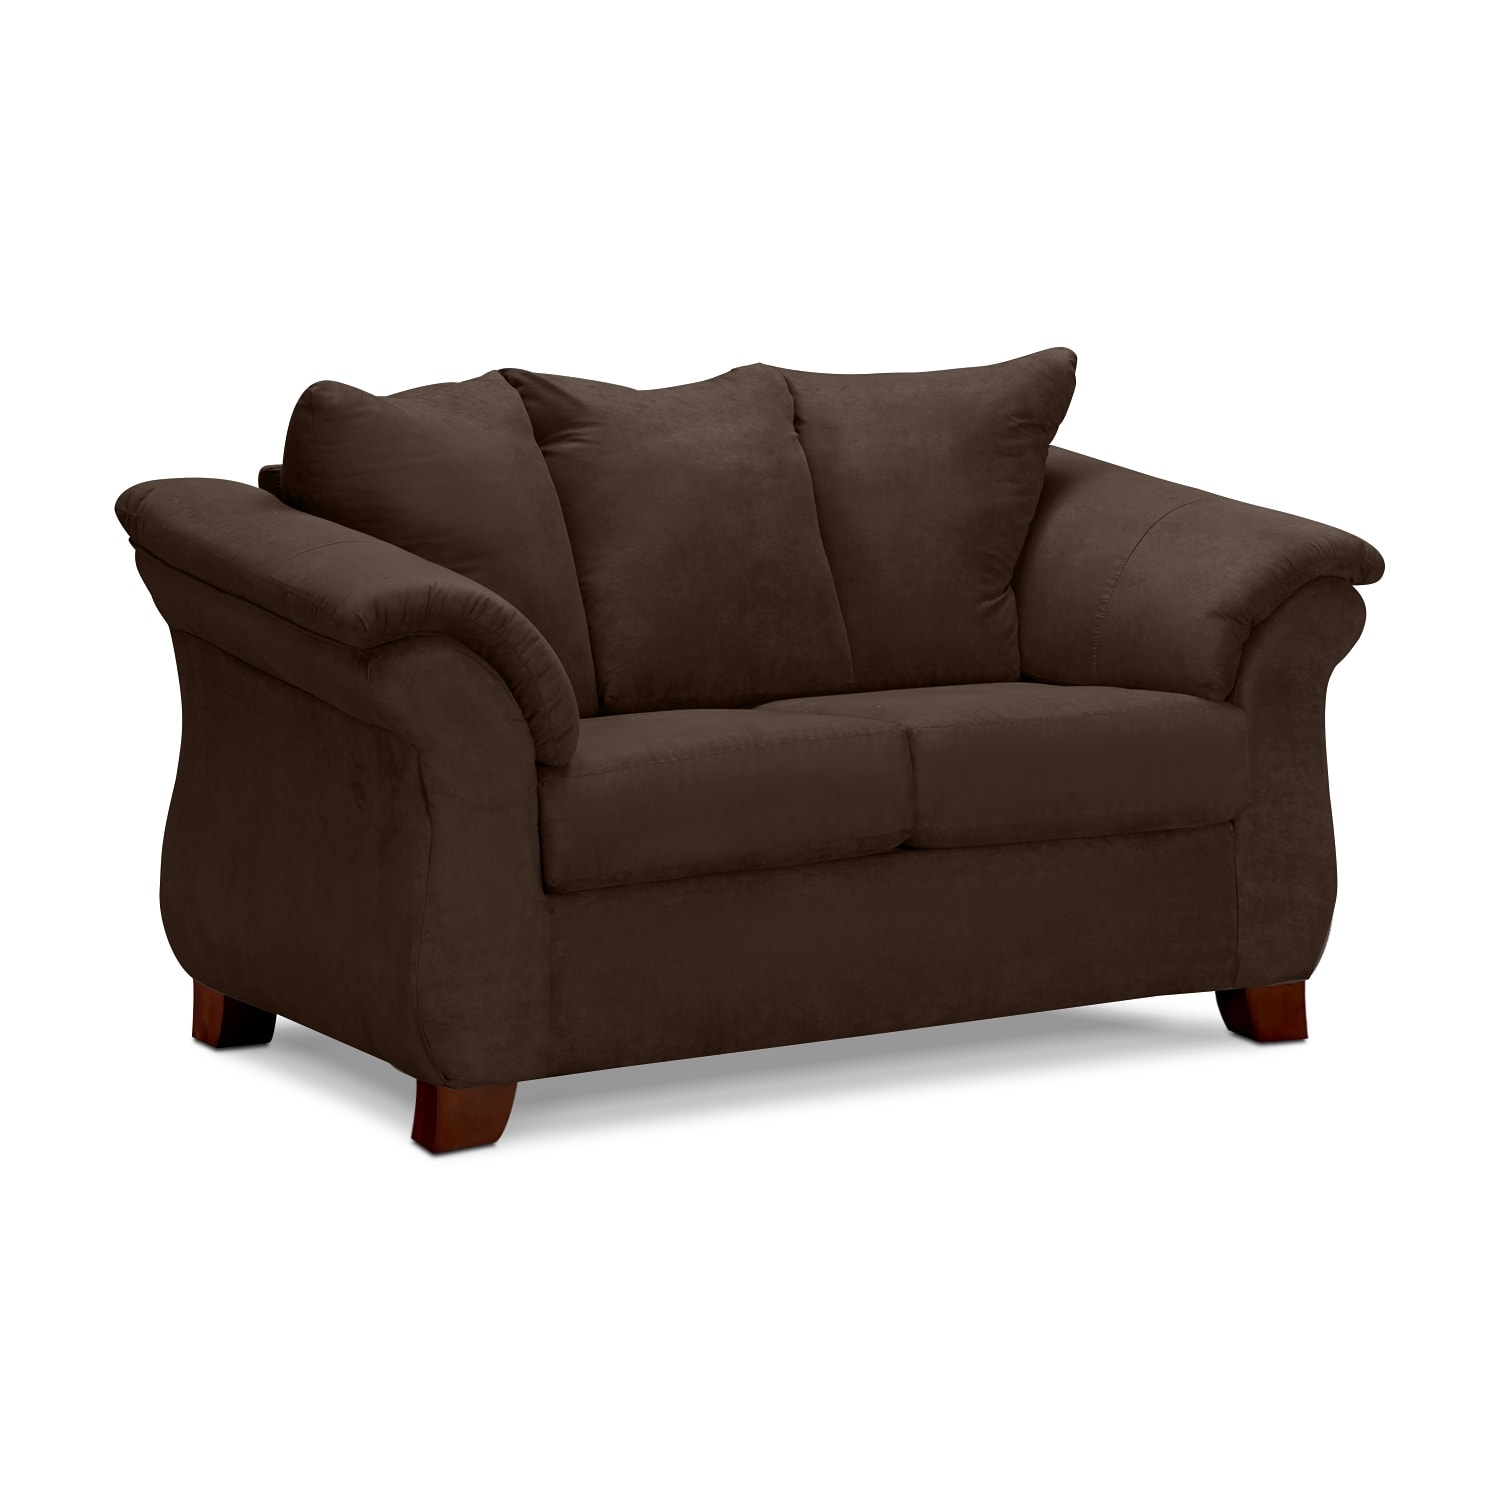 Adrian Sofa Loveseat And Accent Chair Set Chocolate Value City Furniture